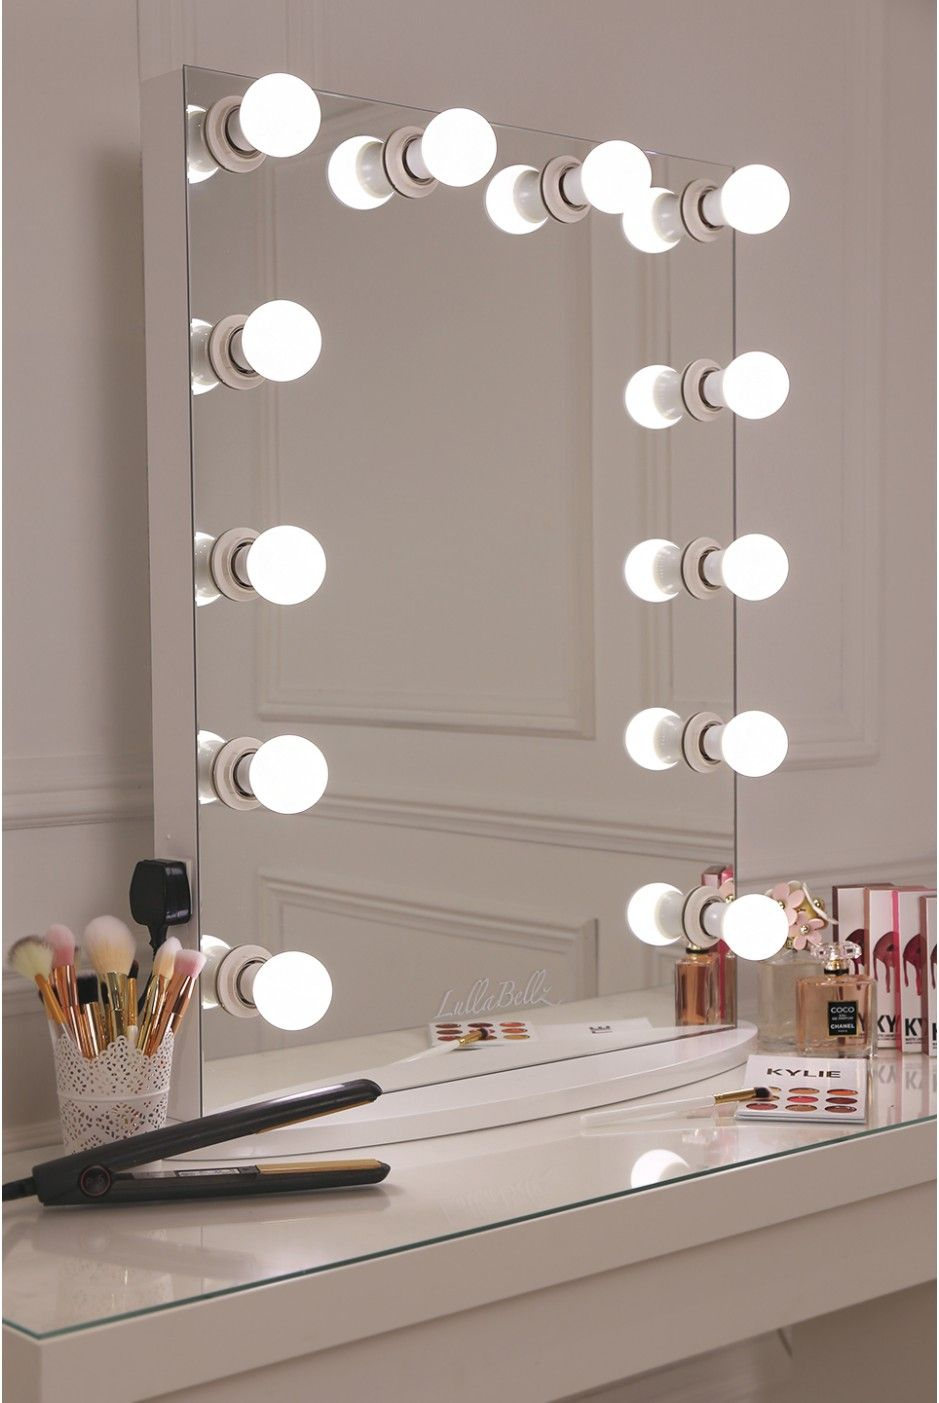 Vanity Lights Installed On Mirror : LULLABELLZ Hollywood Glow Vanity Mirror LED Bulbs. This is what make up dreams are made of girls ...